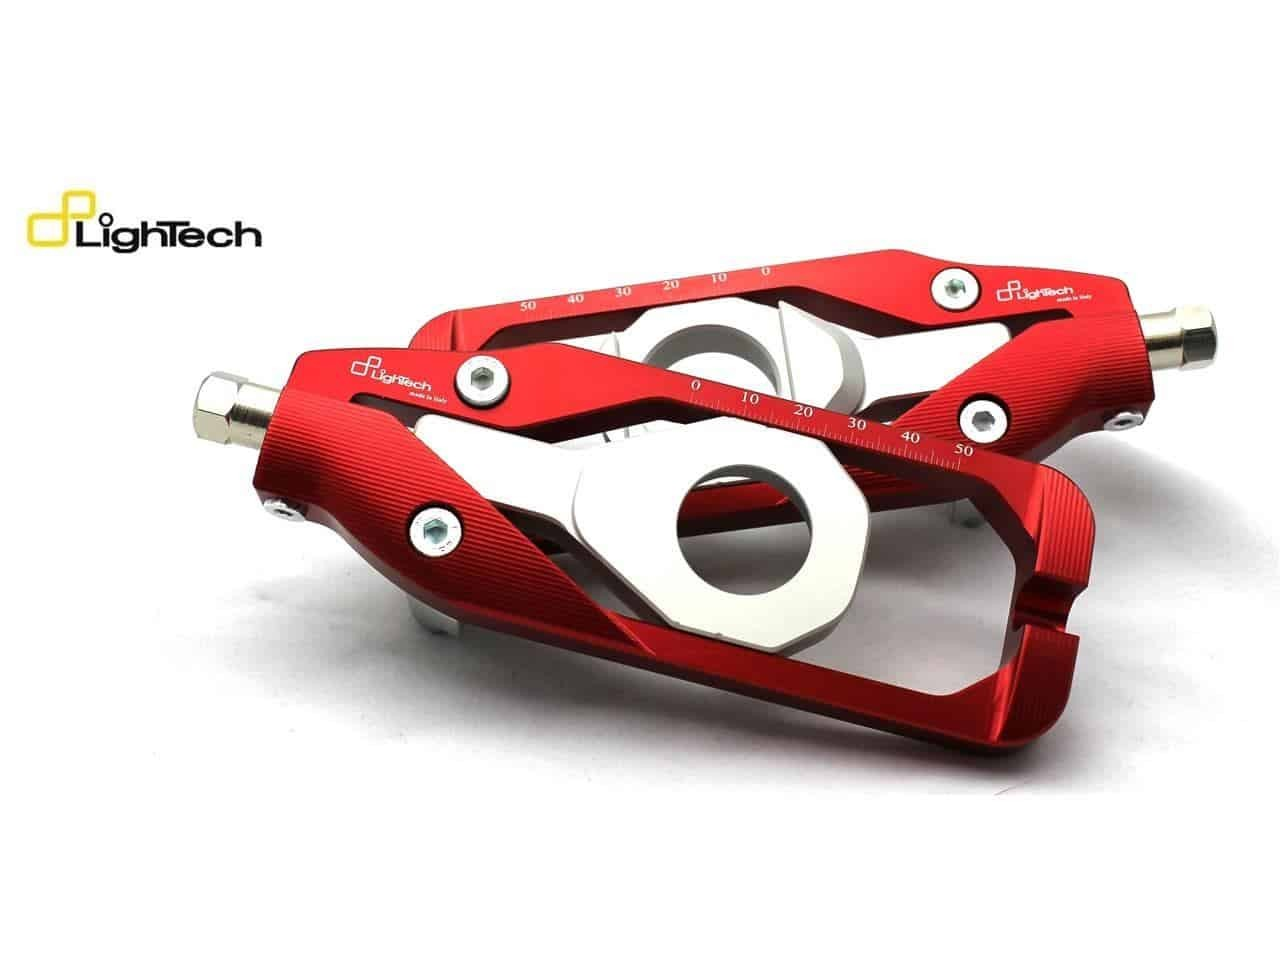 Tendeur Chaine Lightech Aprilia RSV4 1000 1100 rouge